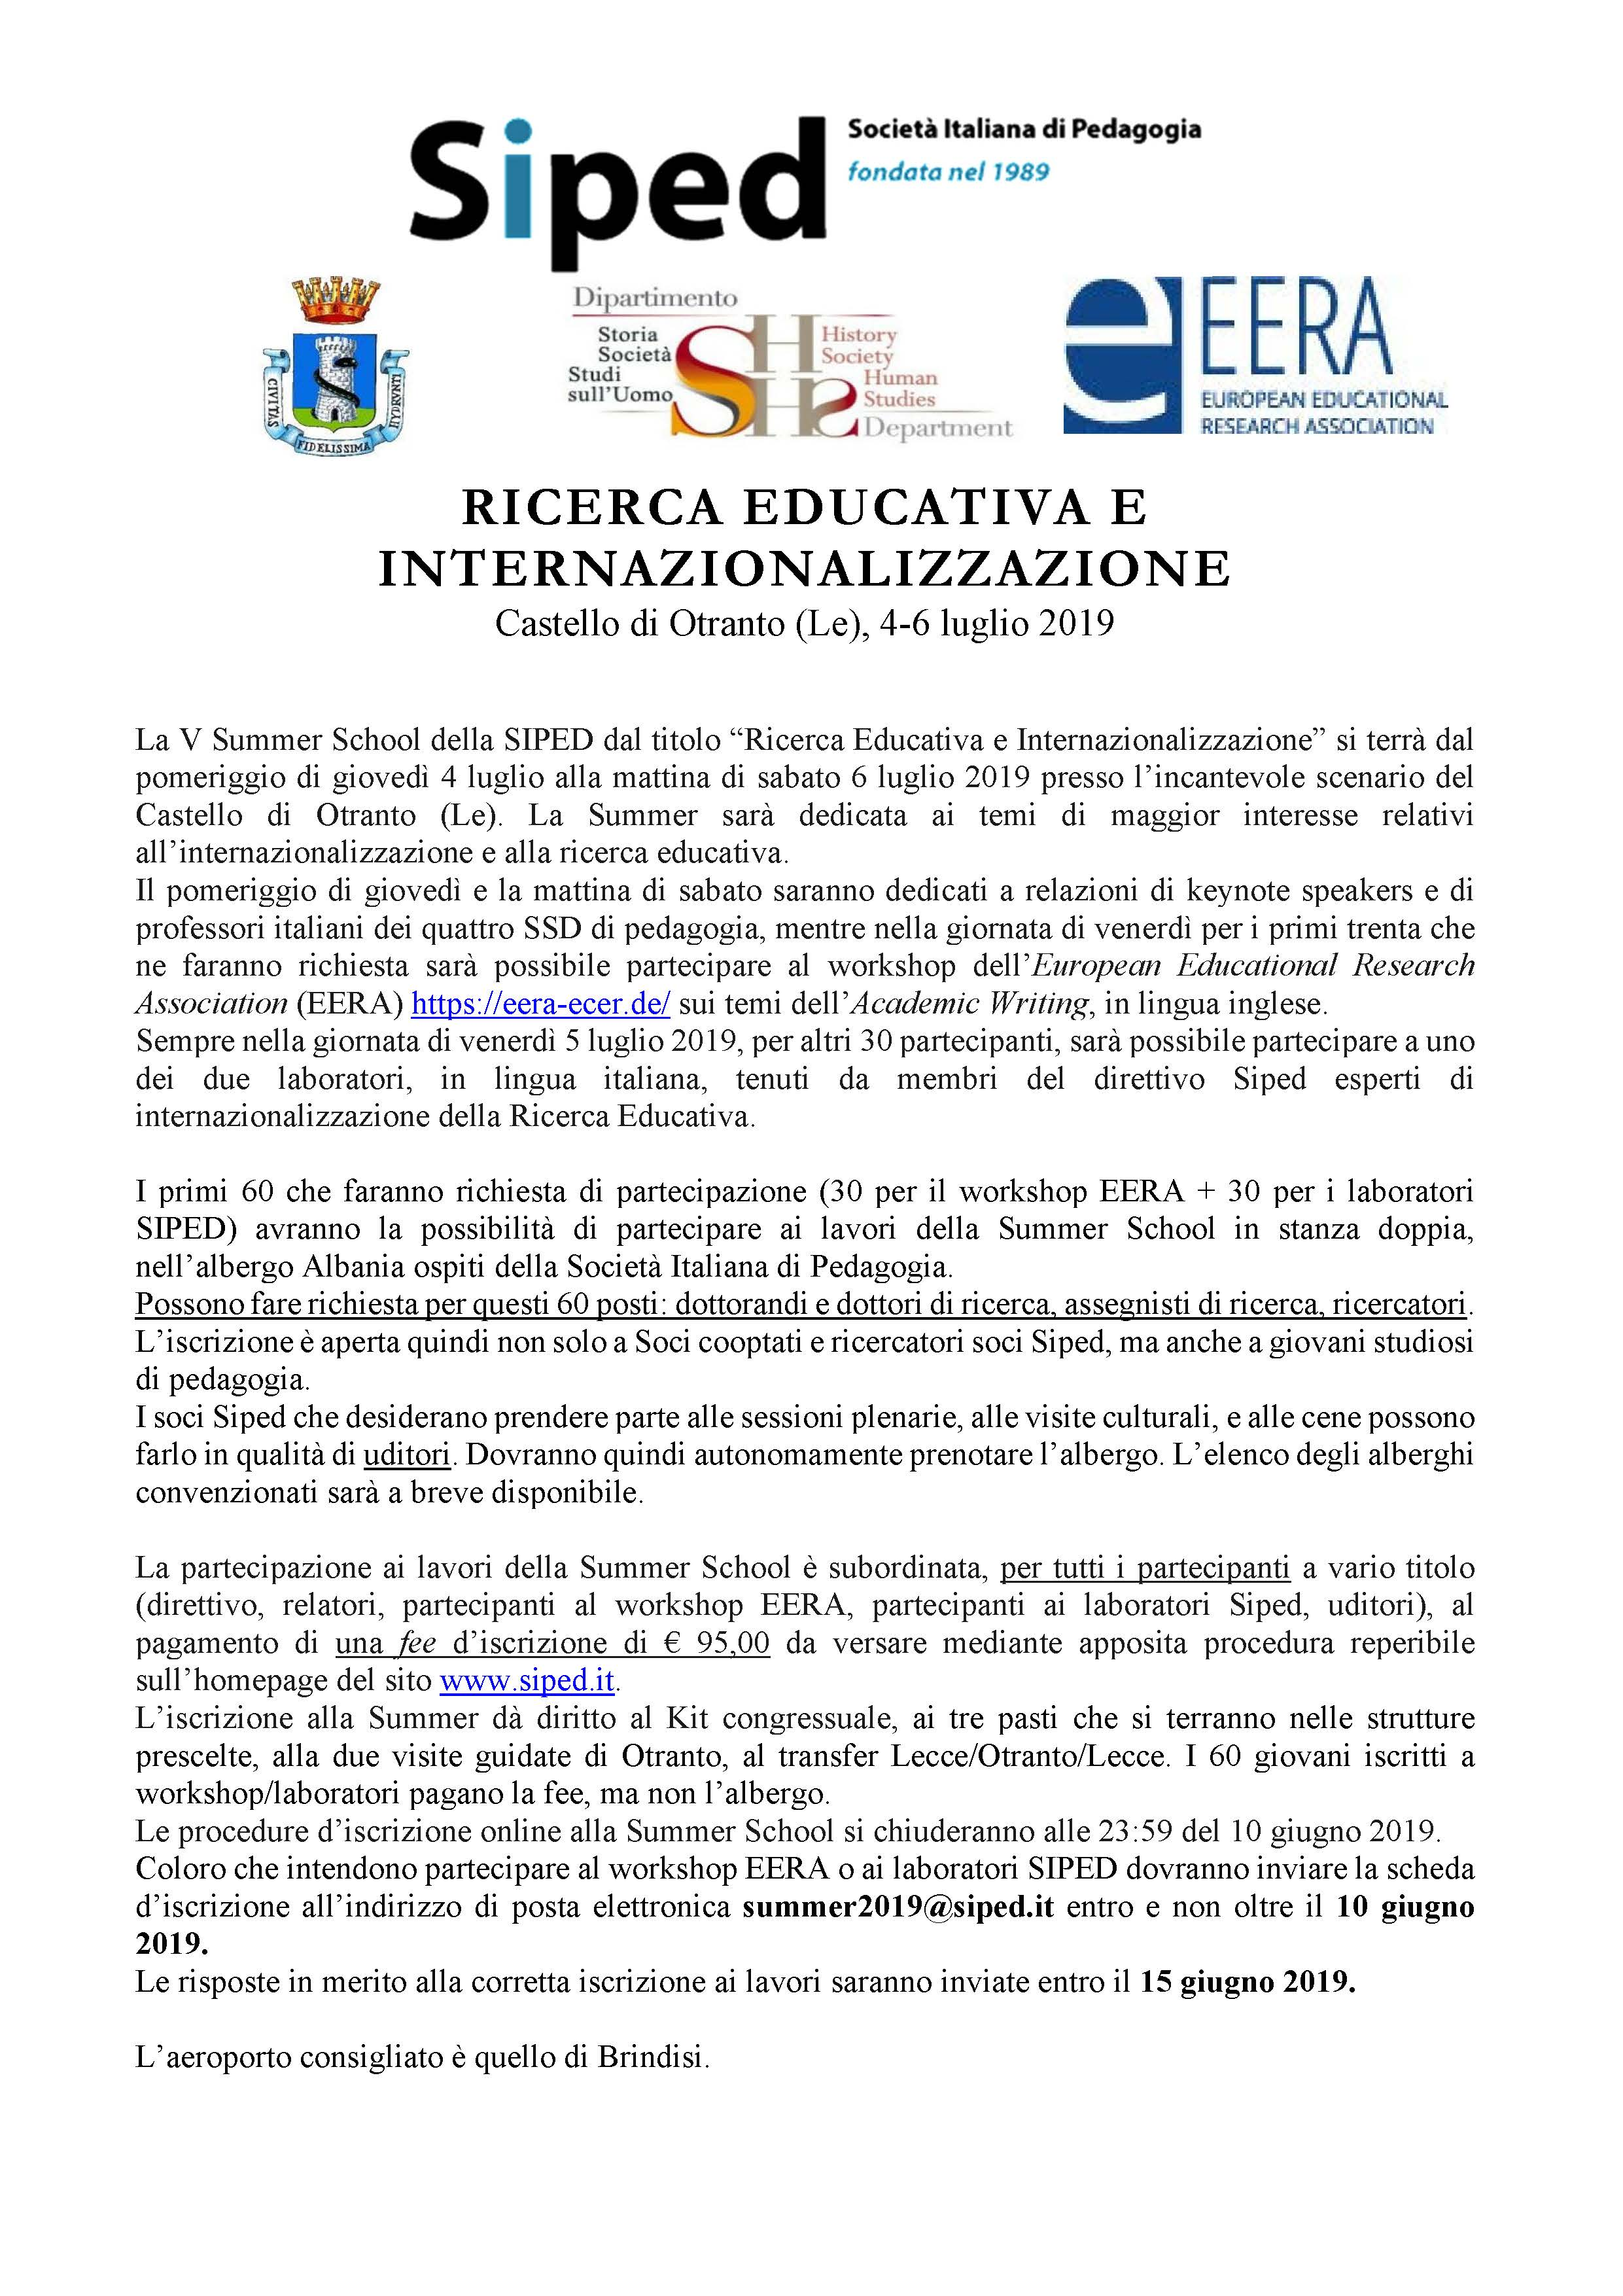 SIPED - Summer School 2019 - Home Page - Pagina 1